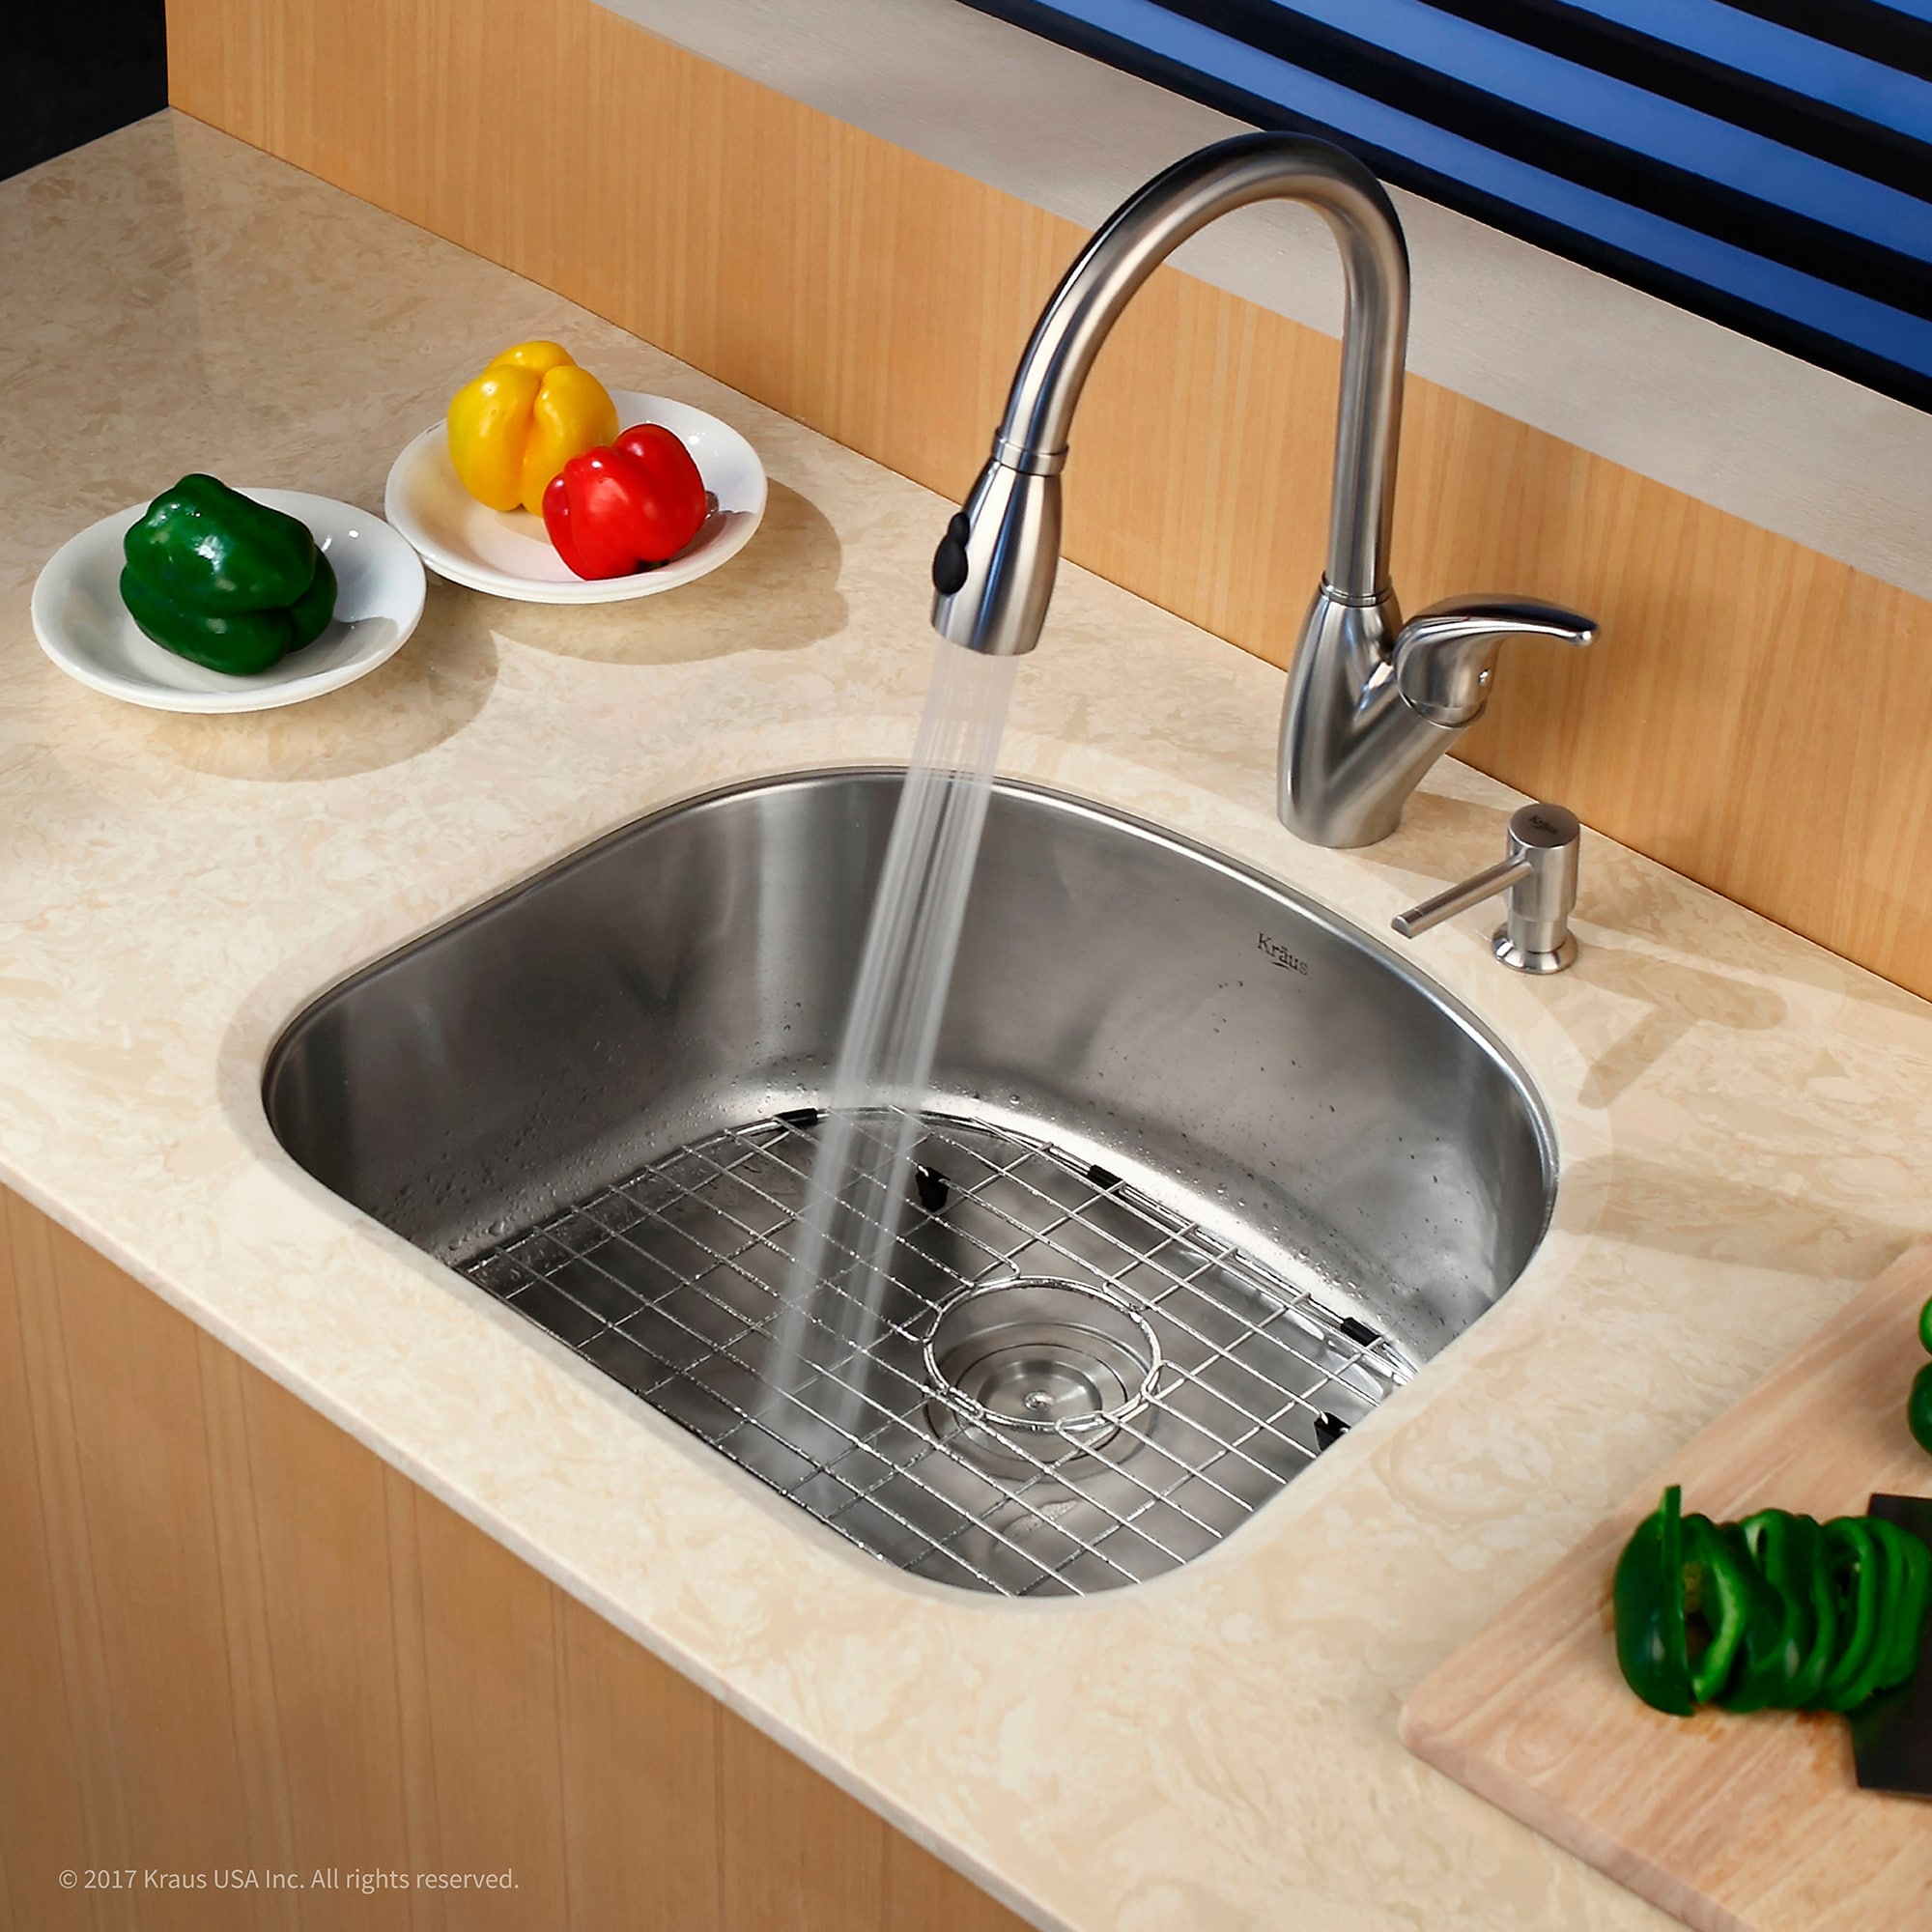 kraus 20 inch undermount single bowl 16 gauge stainless steel kitchen sink with noisedefend soundproofing   free shipping today   overstock com   14067945 kraus 20 inch undermount single bowl 16 gauge stainless steel      rh   overstock com